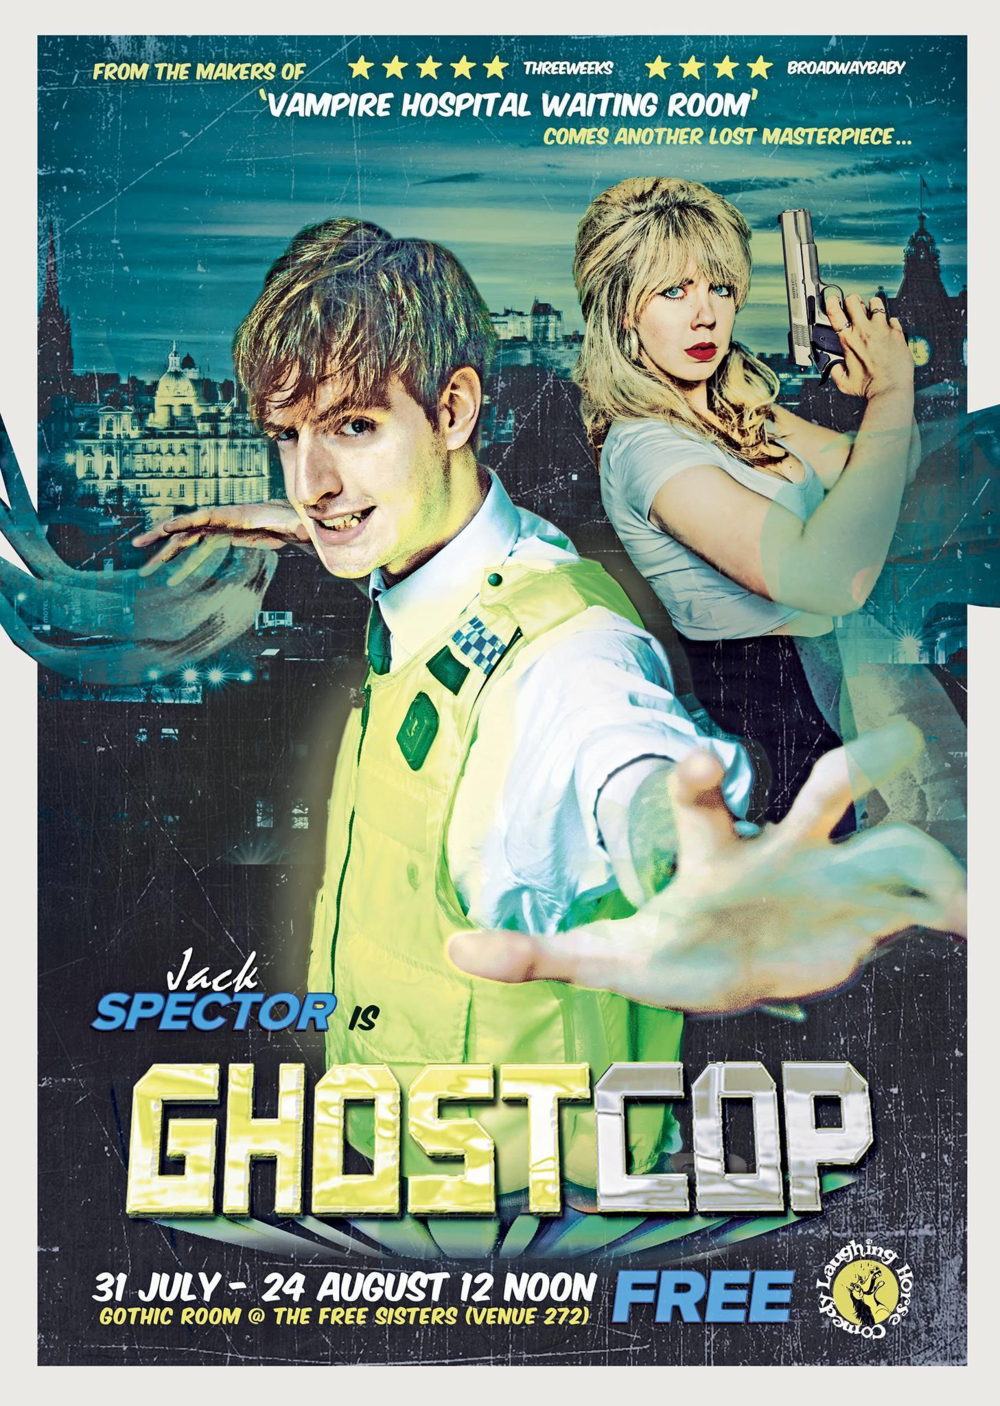 GhostCop poster. Design by Mihaela Bodlovic: http://www.aliceboreasphotography.com/